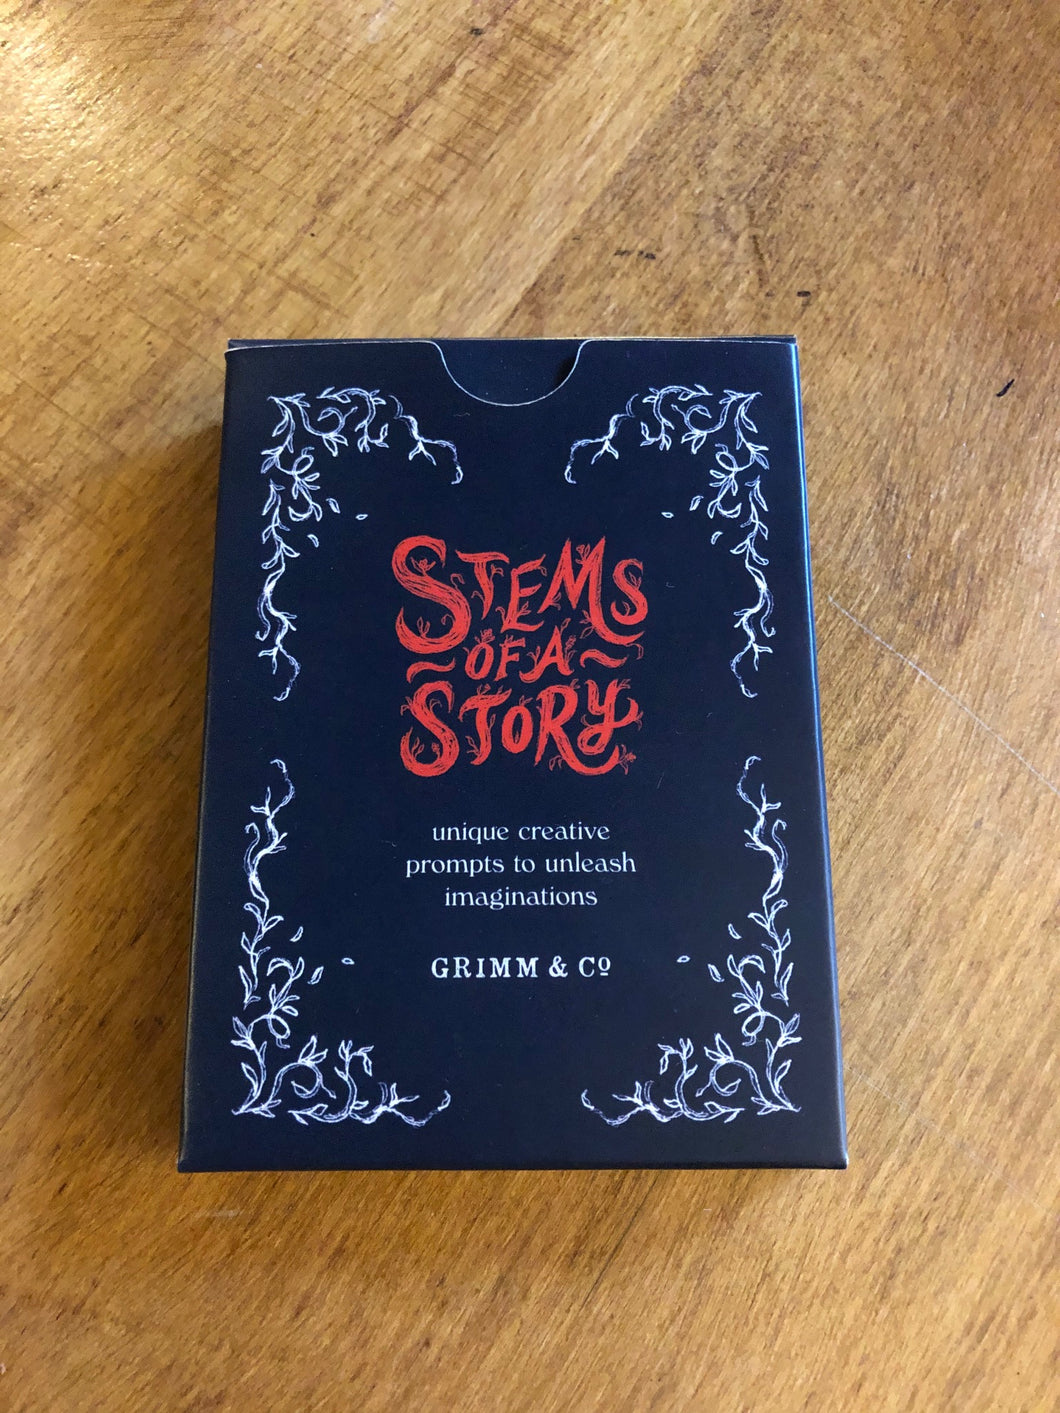 Image showing the front of the cardboard box for the card game Stems of a Story, created by children and young people during workshops at Grimm and Co.